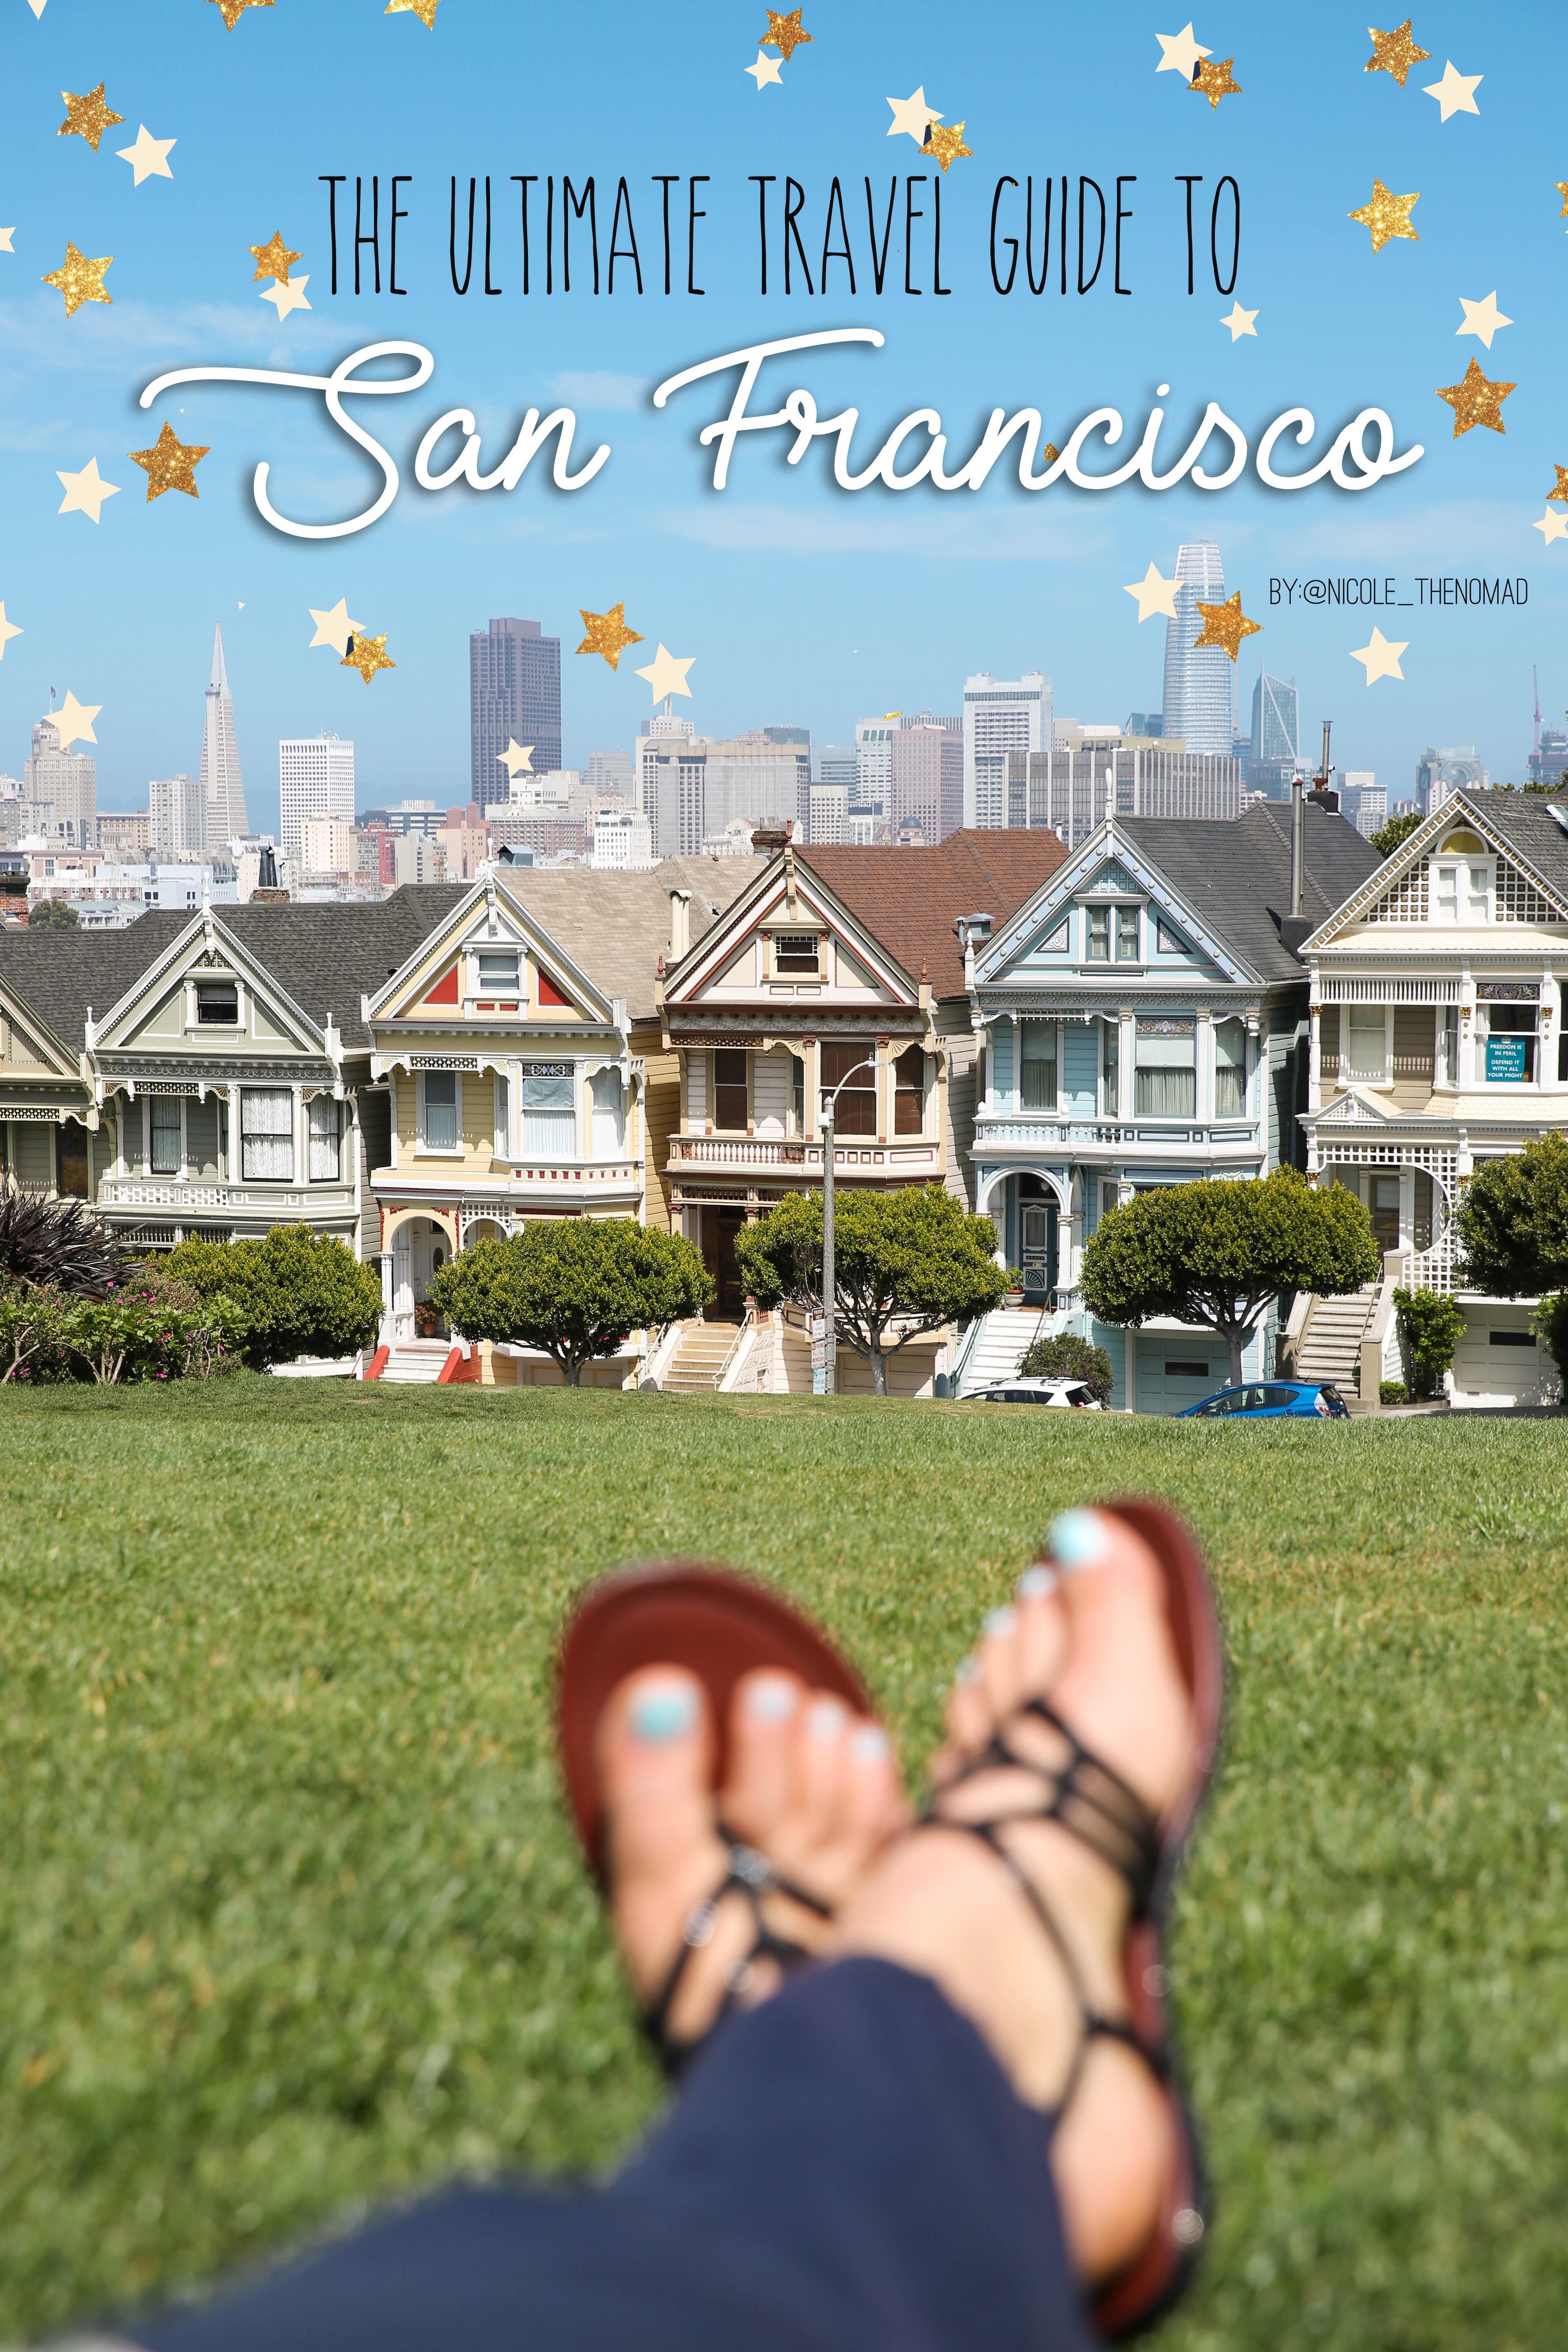 The Ultimate Travel Guide to San Francisco